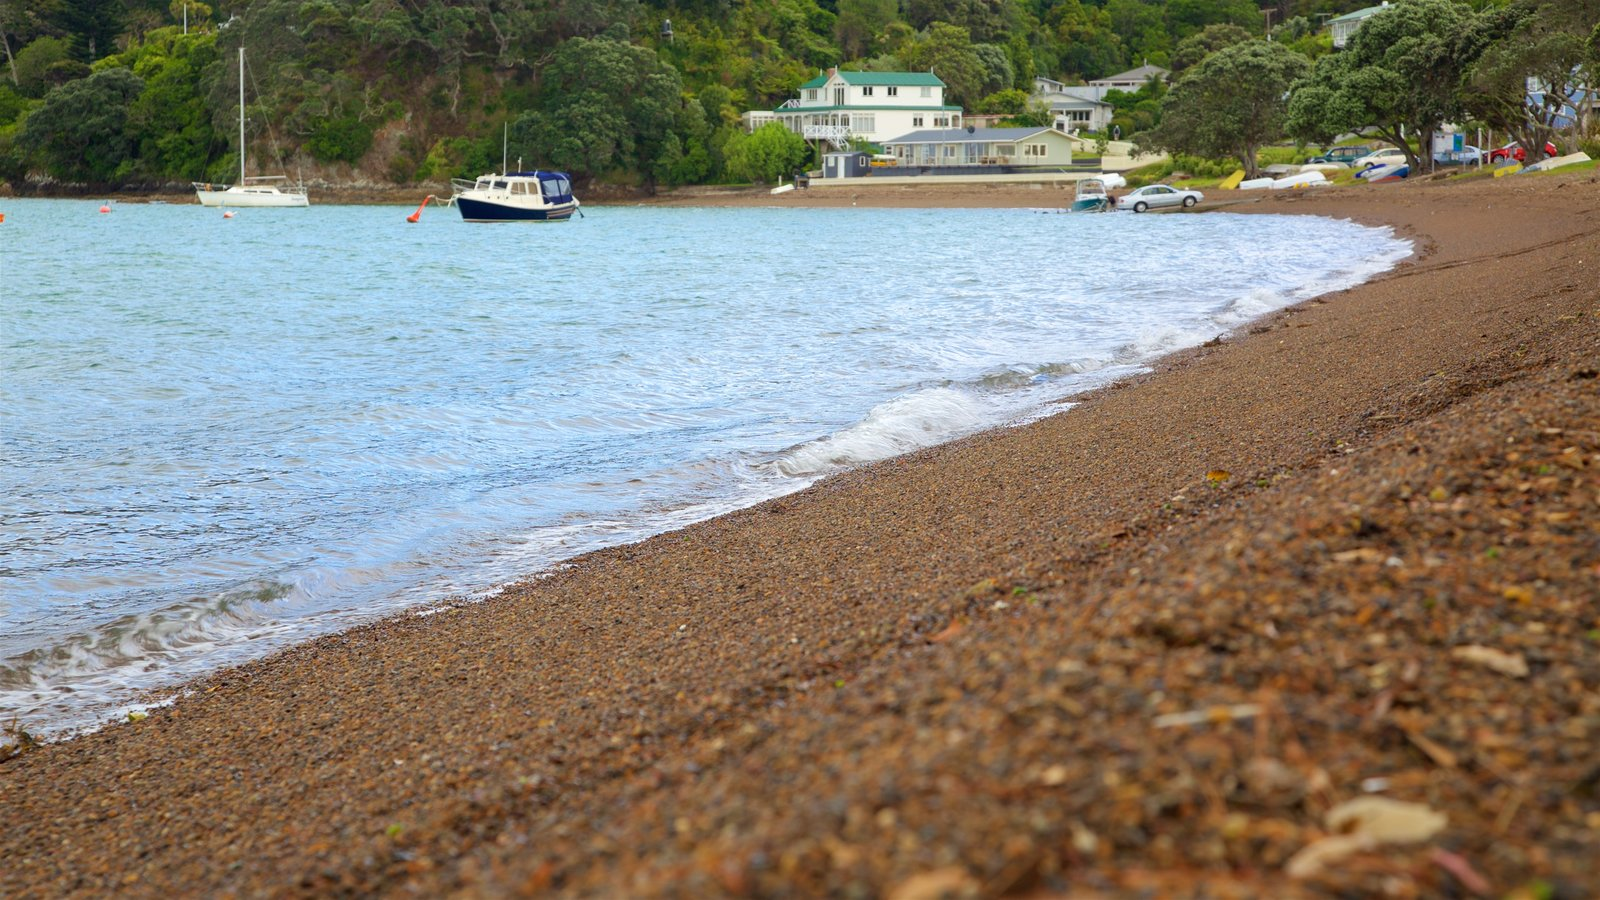 Russell Beach which includes a bay or harbor, a coastal town and a pebble beach